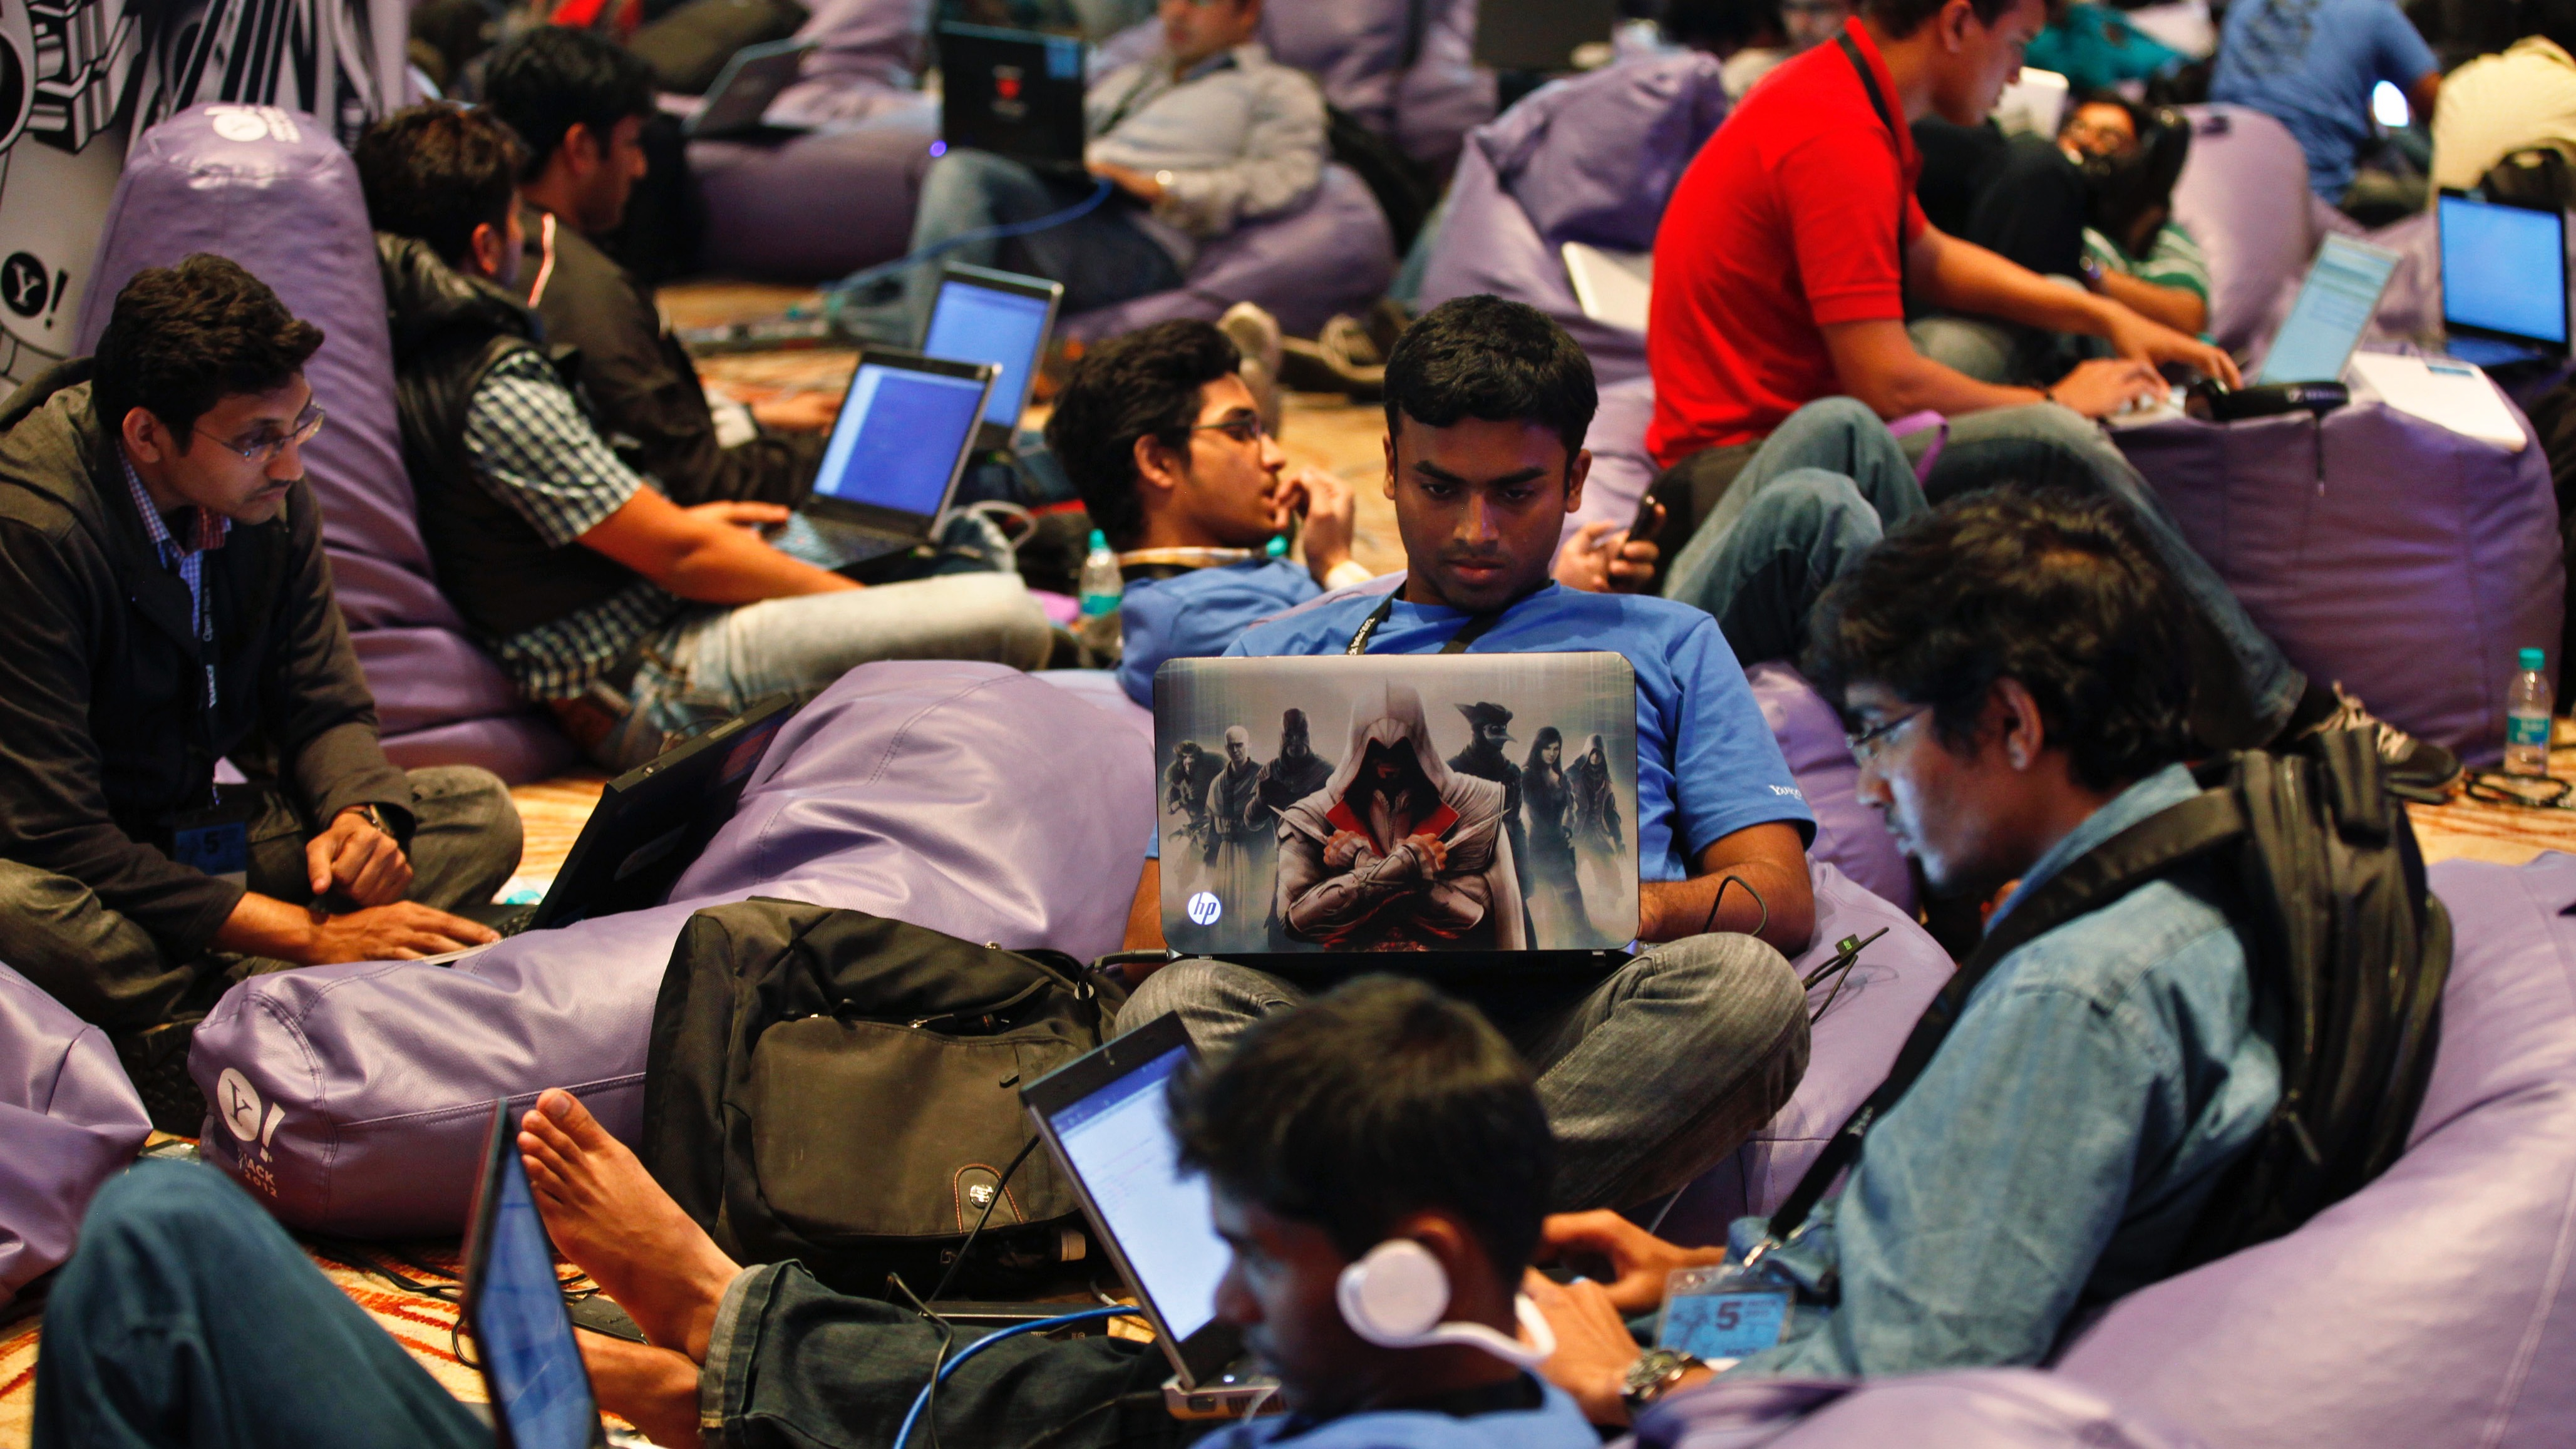 Participants work on their laptops during the fifth Open Hack in India in Bangalore, India, Sunday, Aug. 12, 2012. About 700 software engineers and developers took part in the 24-hour open hacking competition organized by Yahoo, which gives developers a chance to work together and build applications and product ideas using different technologies to develop something that can potentially solve a real-world problem that impact internet users. (AP Photo/Aijaz Rahi)